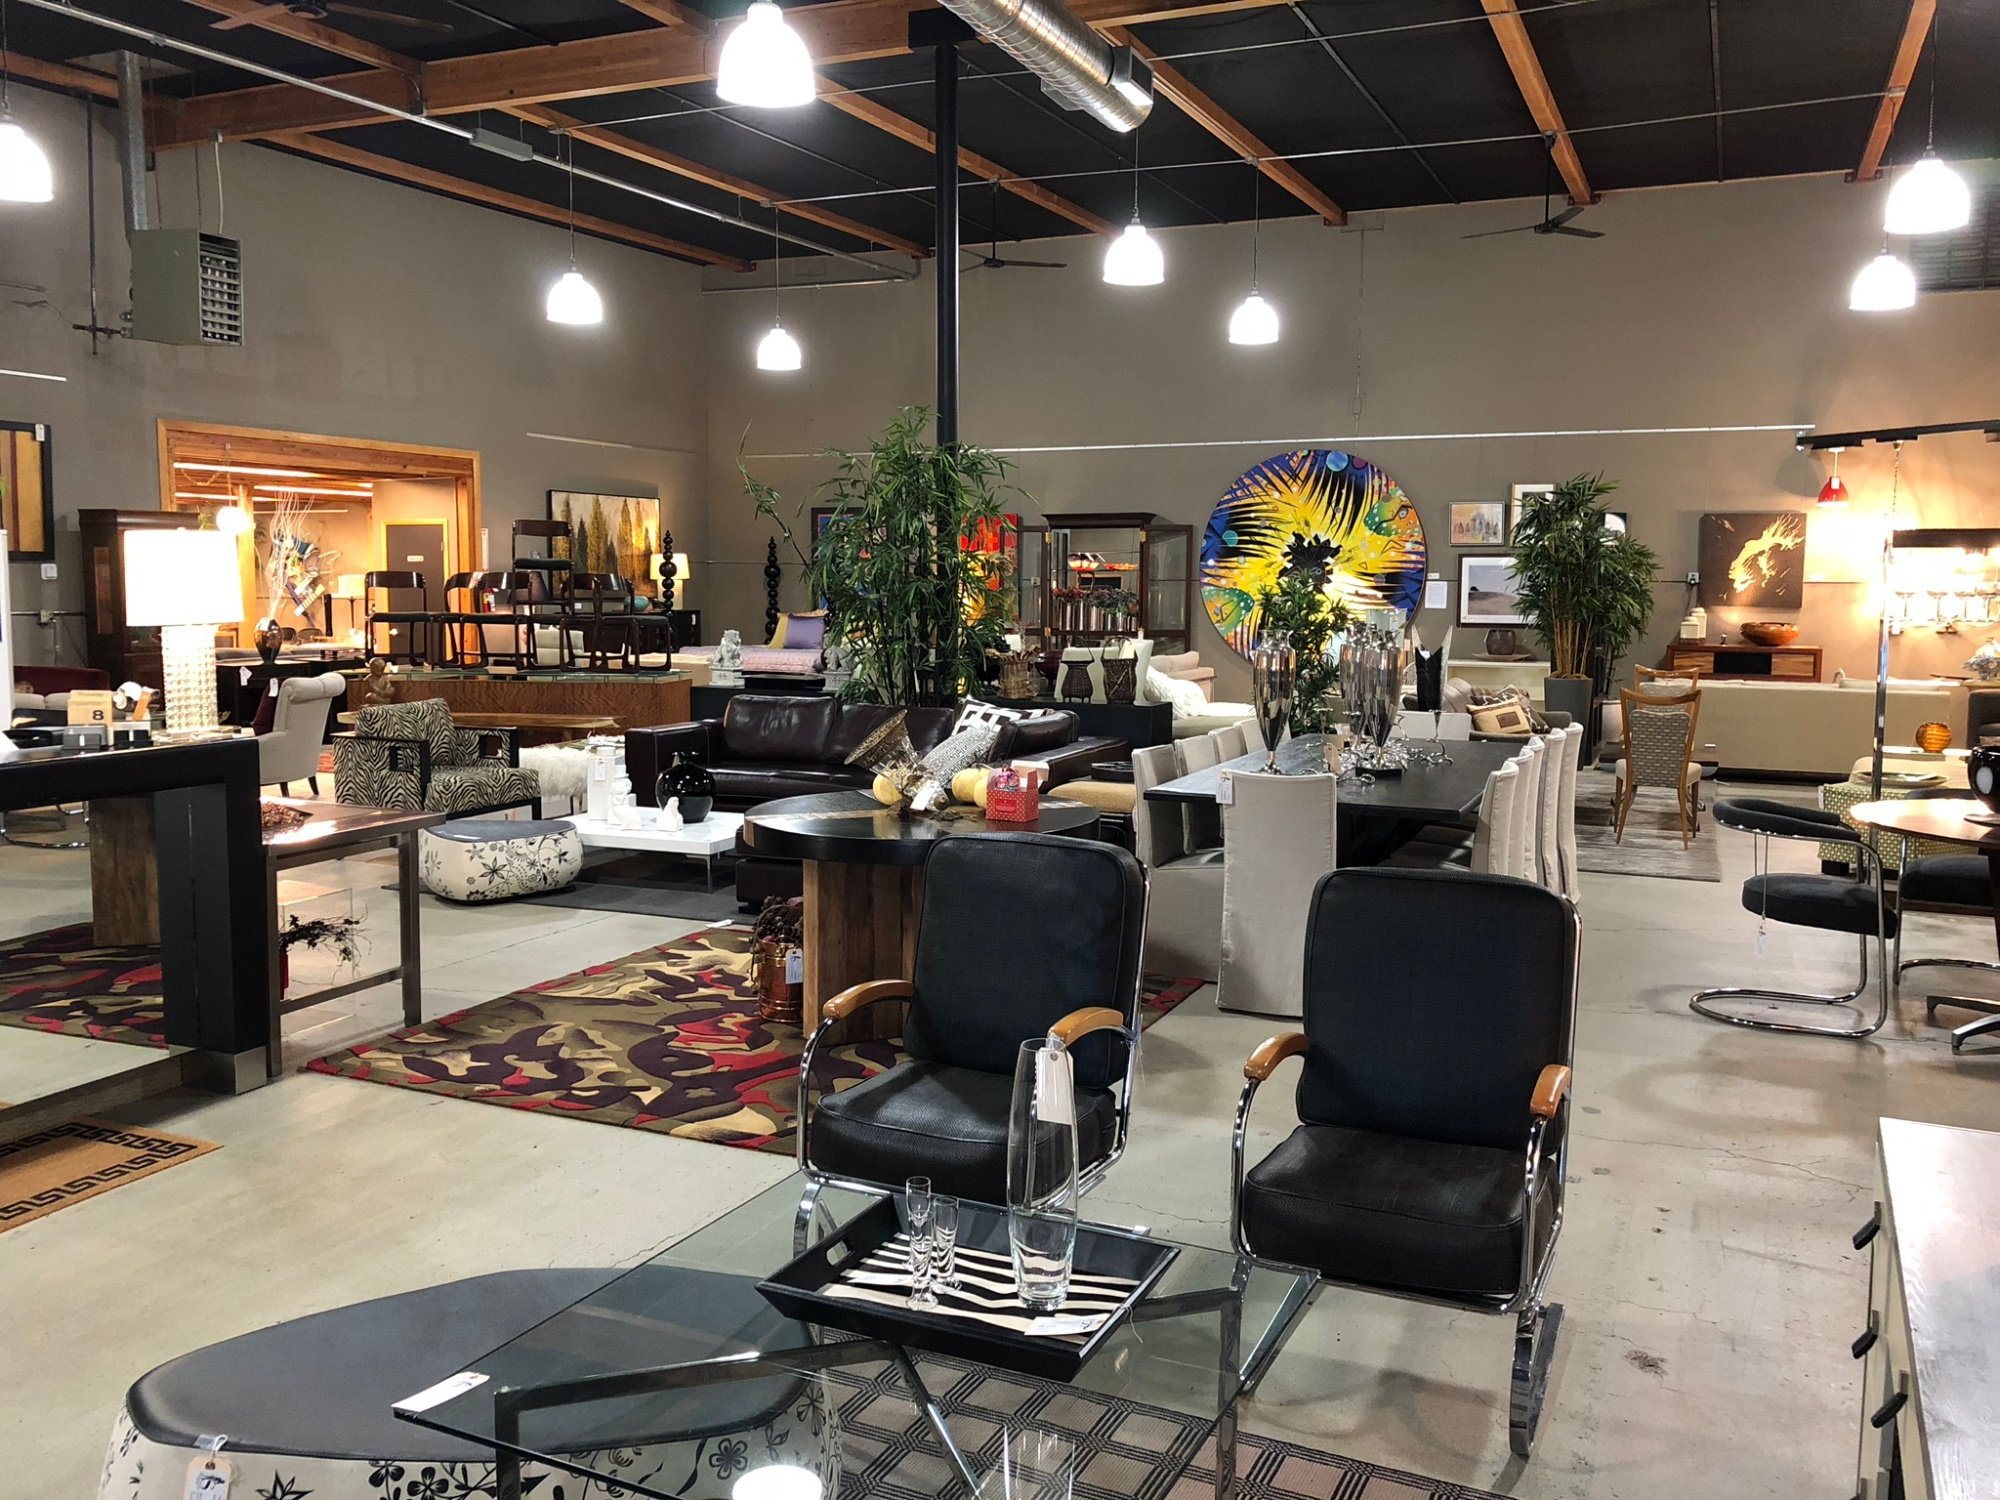 Seams to Fit furniture store interior in Northwest Portland